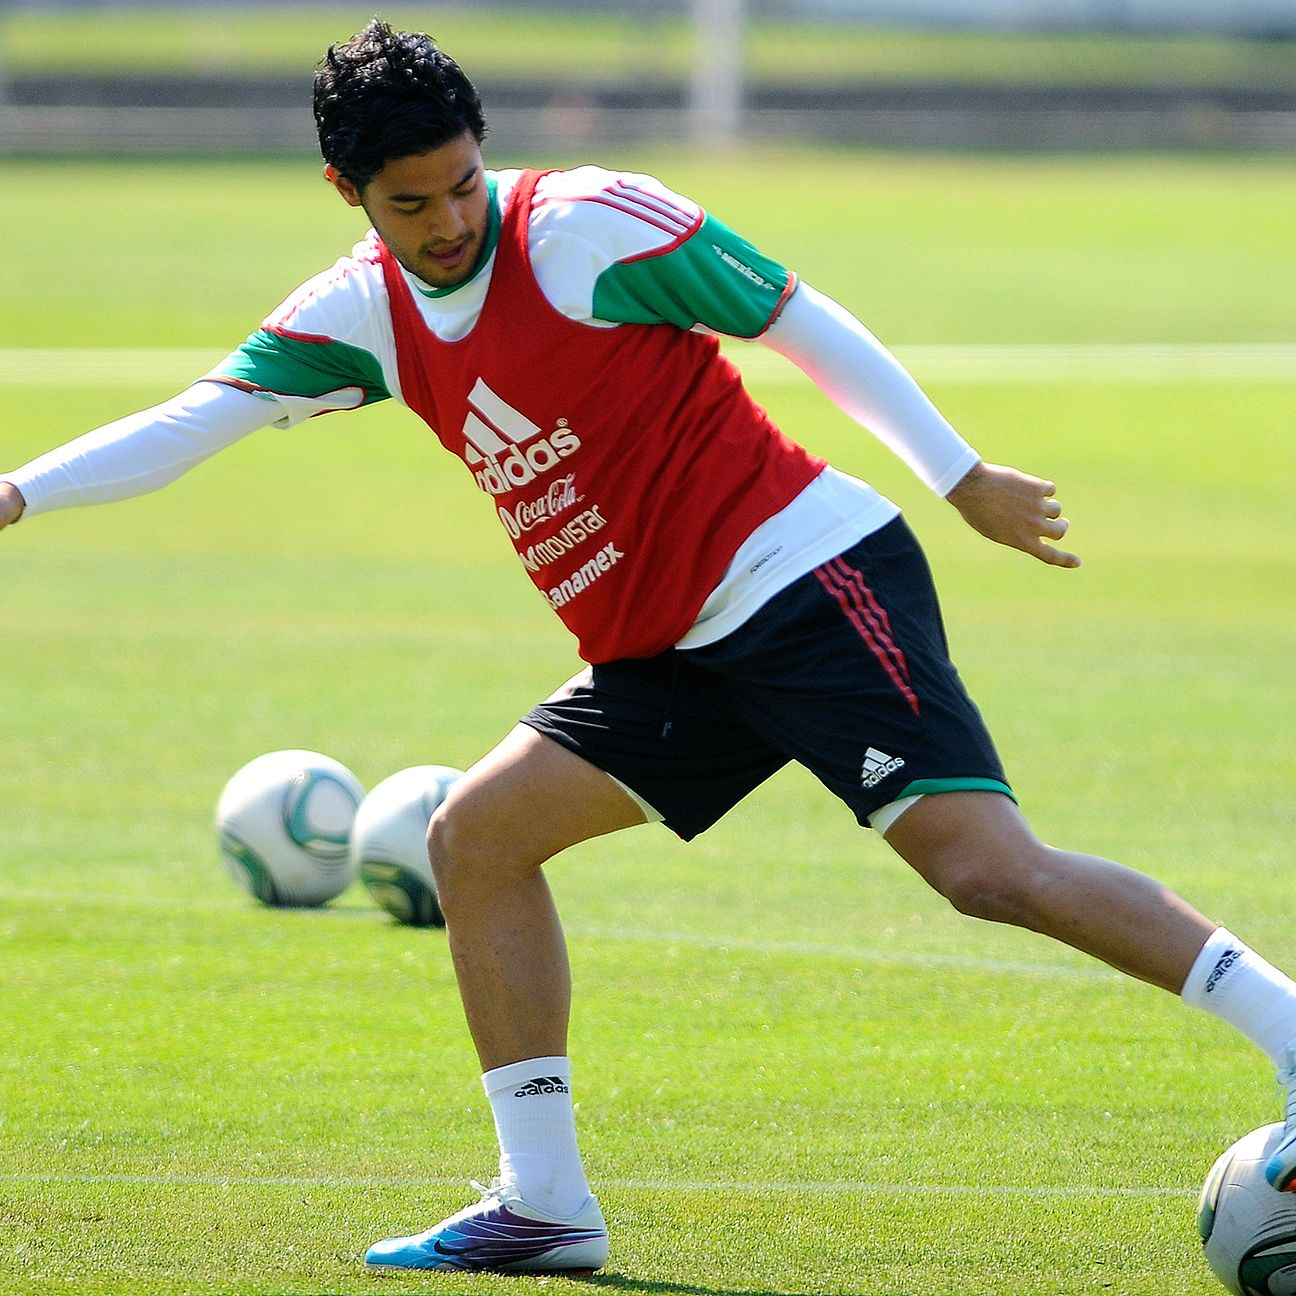 Carlos Vela's 'will-he-or-won't-he' game with the Mexican national team continues to drag on.